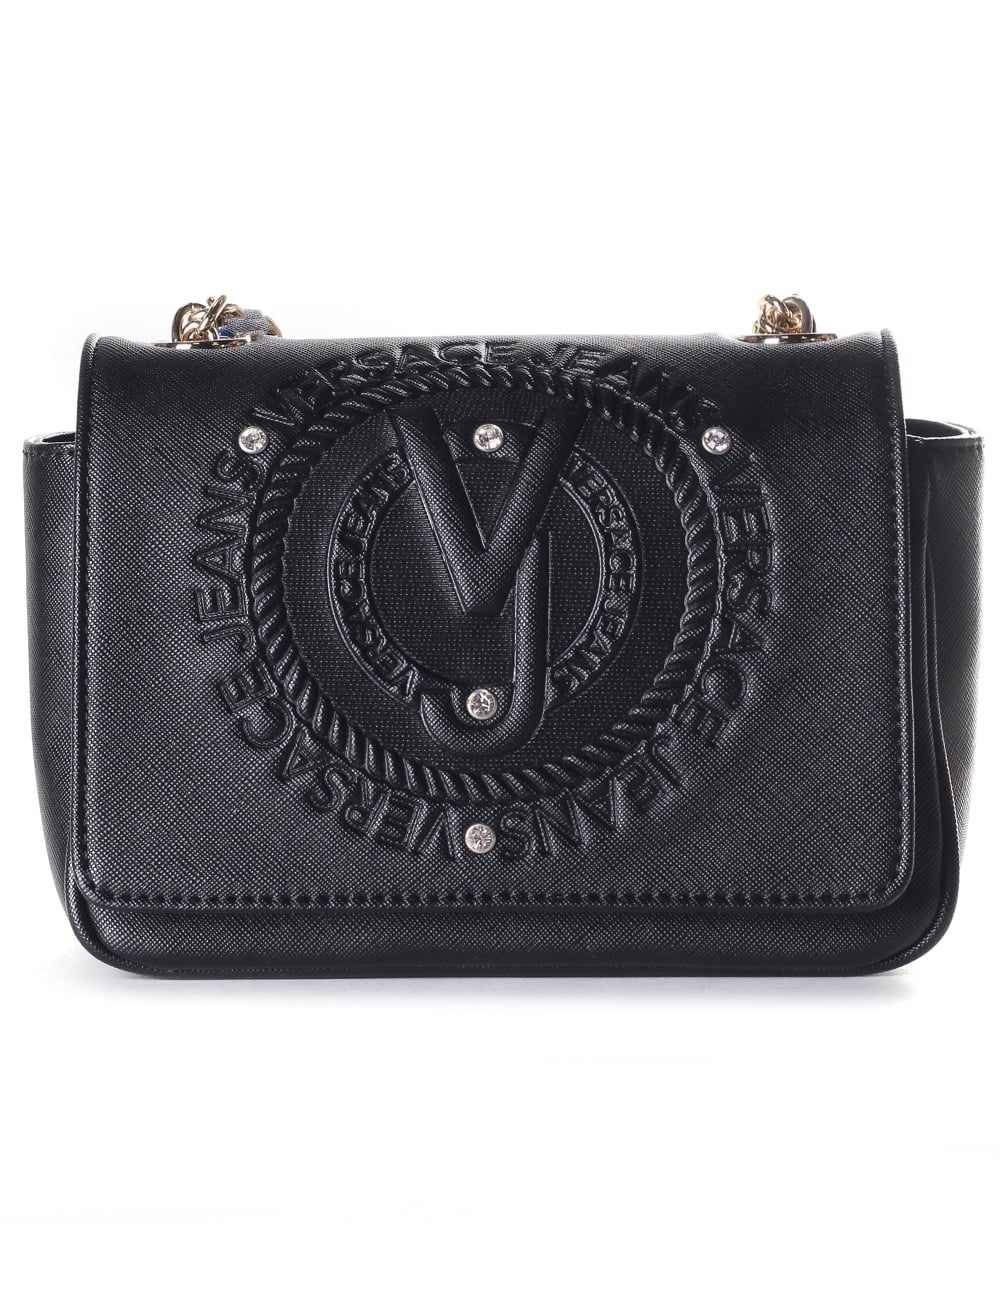 c360d9f04a51 Versace Jeans Embossed Logo Women s Chain Strap Bag Black